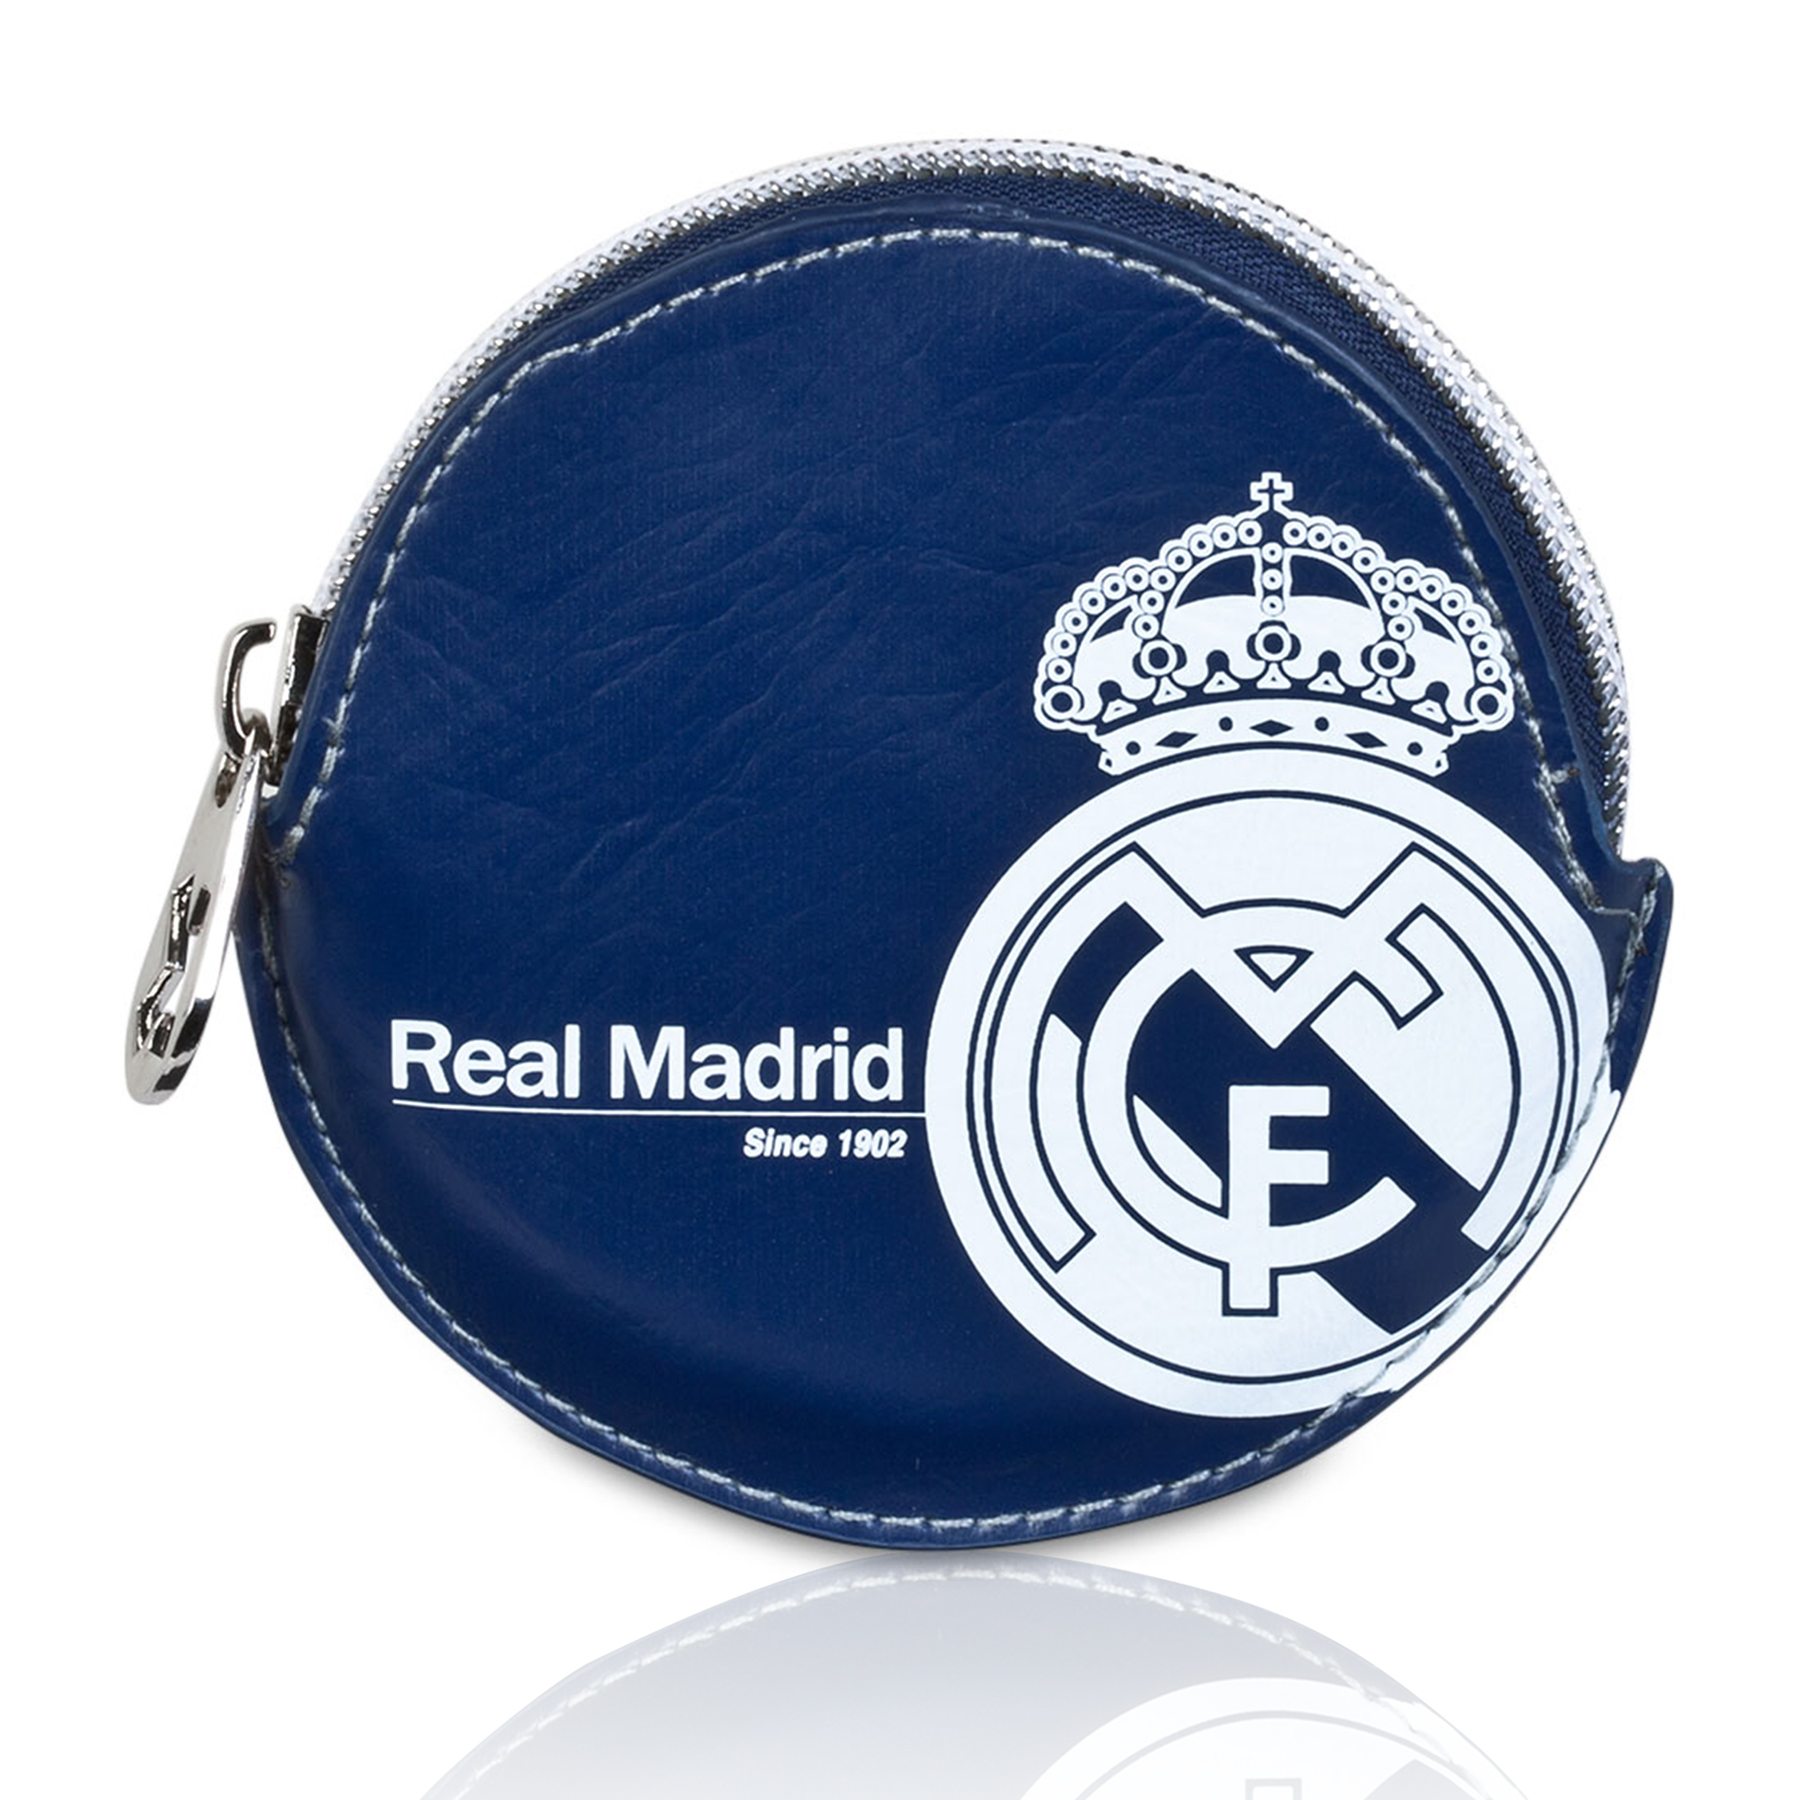 Real Madrid Coin Purse - Blue/Silver